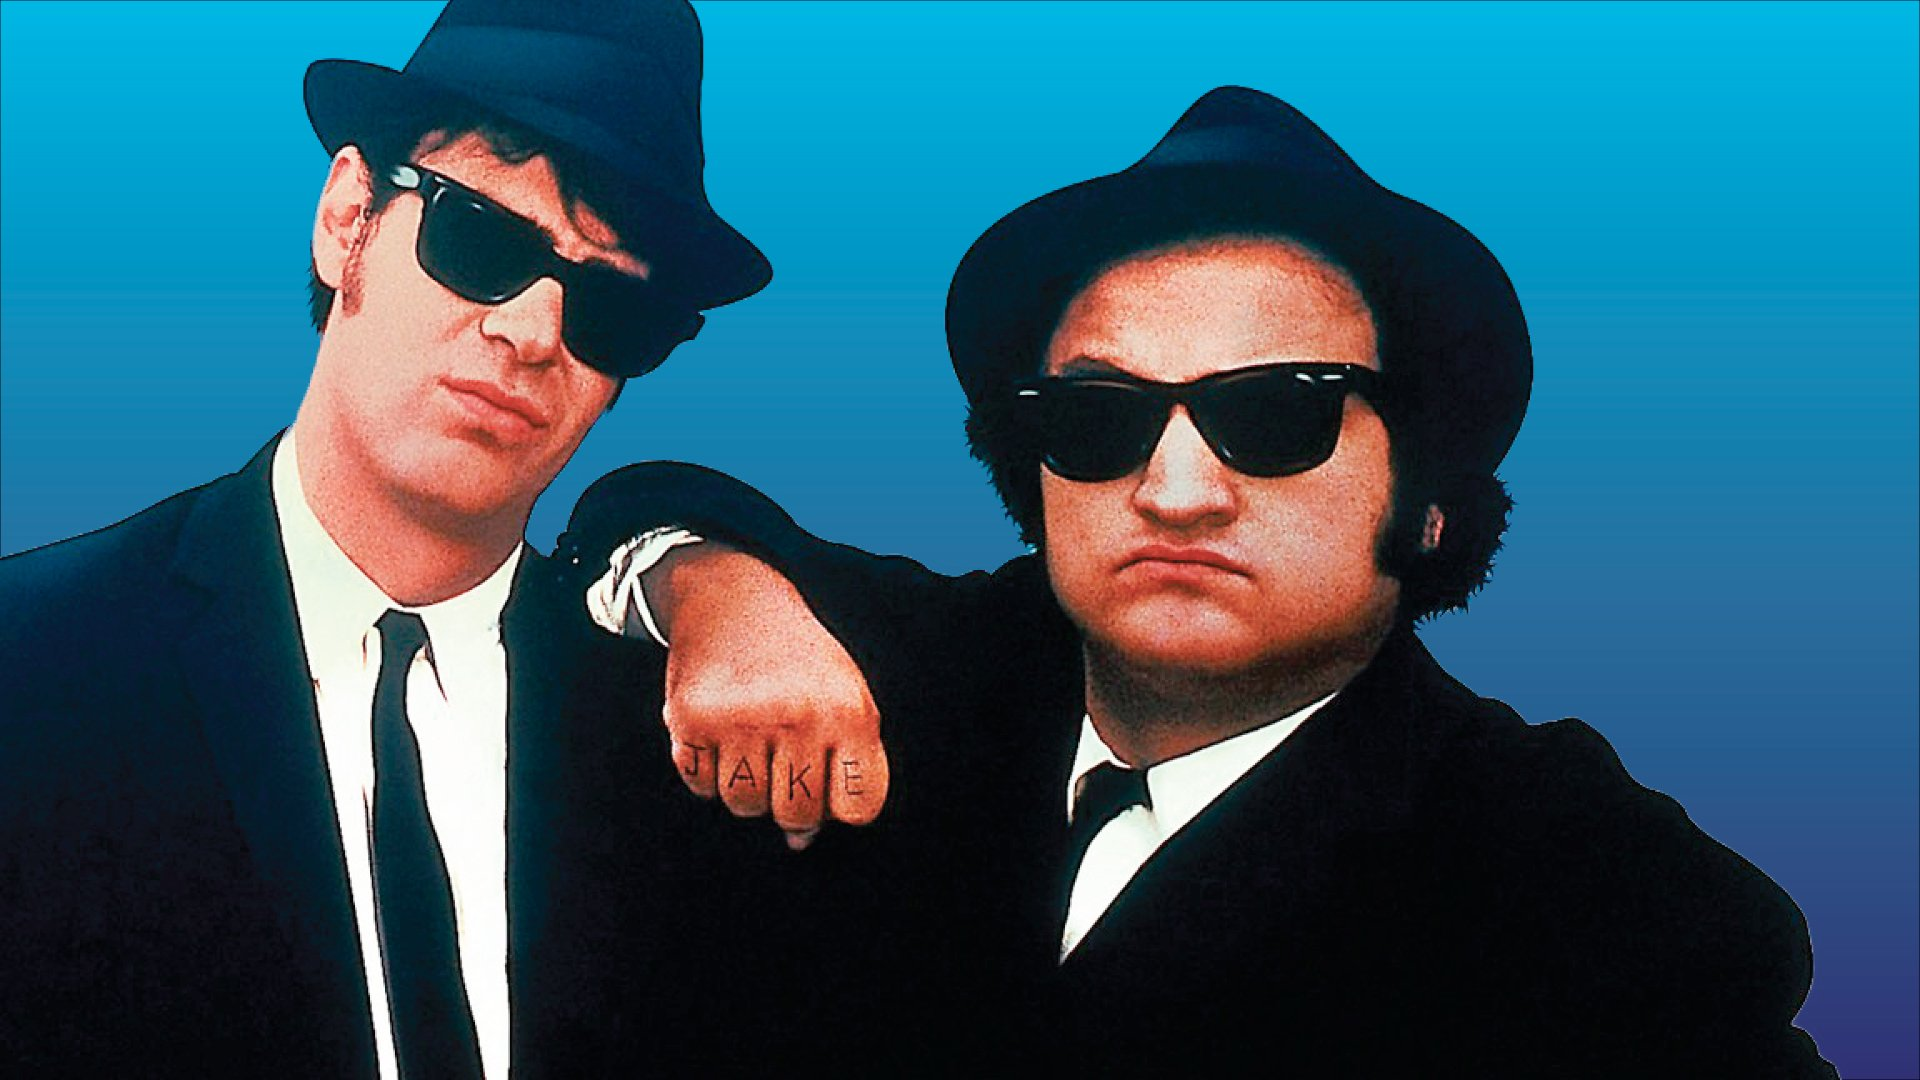 Blues Brothers 0 12 Of The Best Musical And Dance Films From The 80s - Which Is Your Favourite?